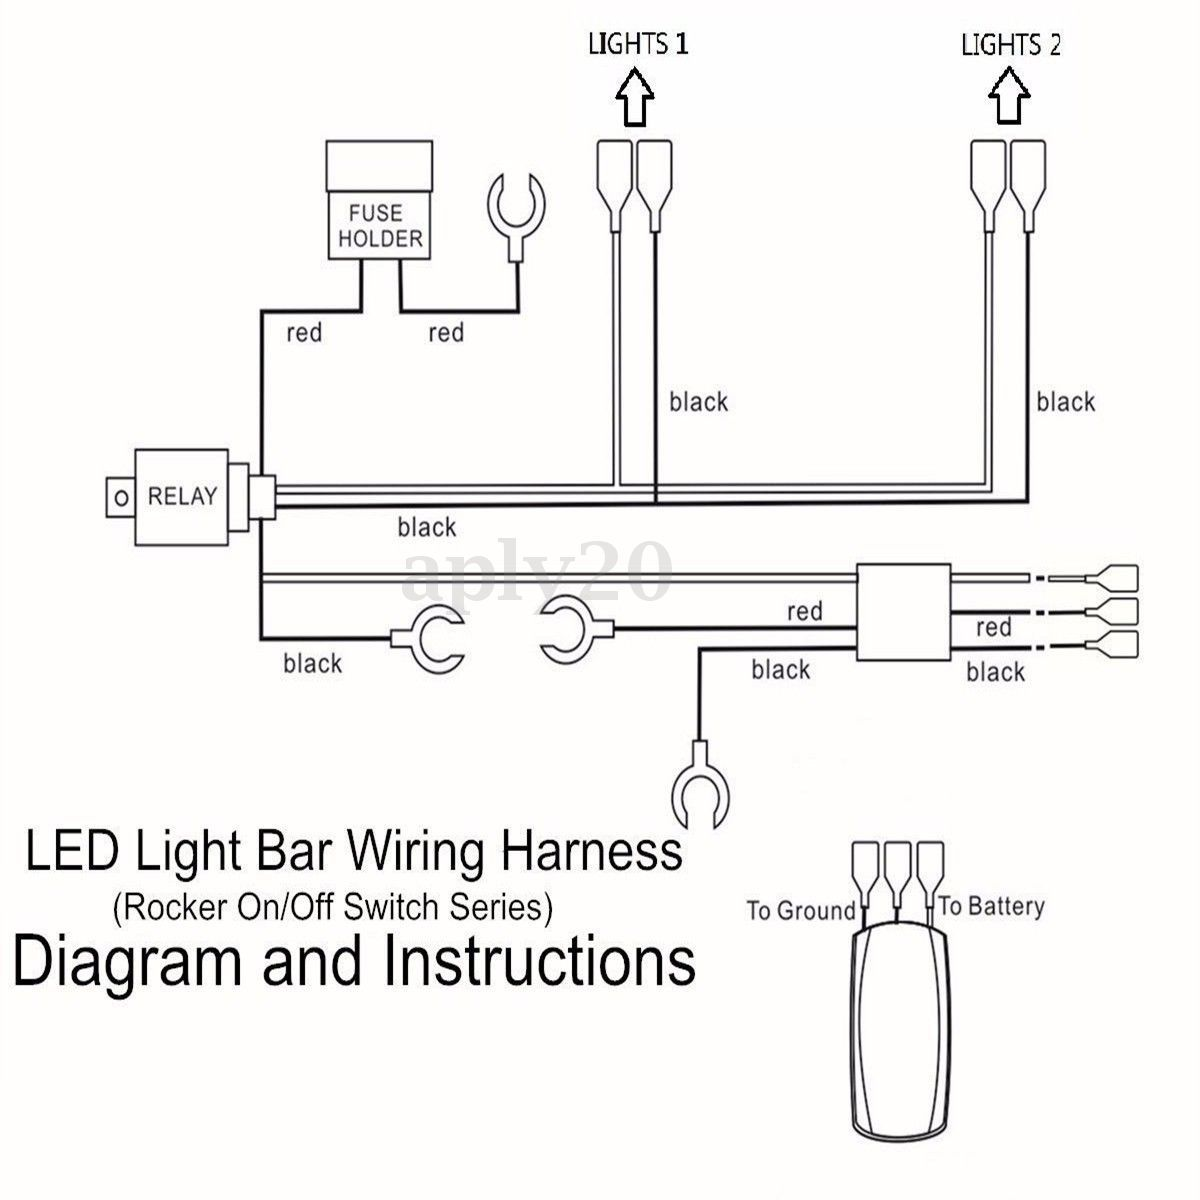 pin by marz weisheim on things led light bars bar Pentair Pool Light Parts Diagram